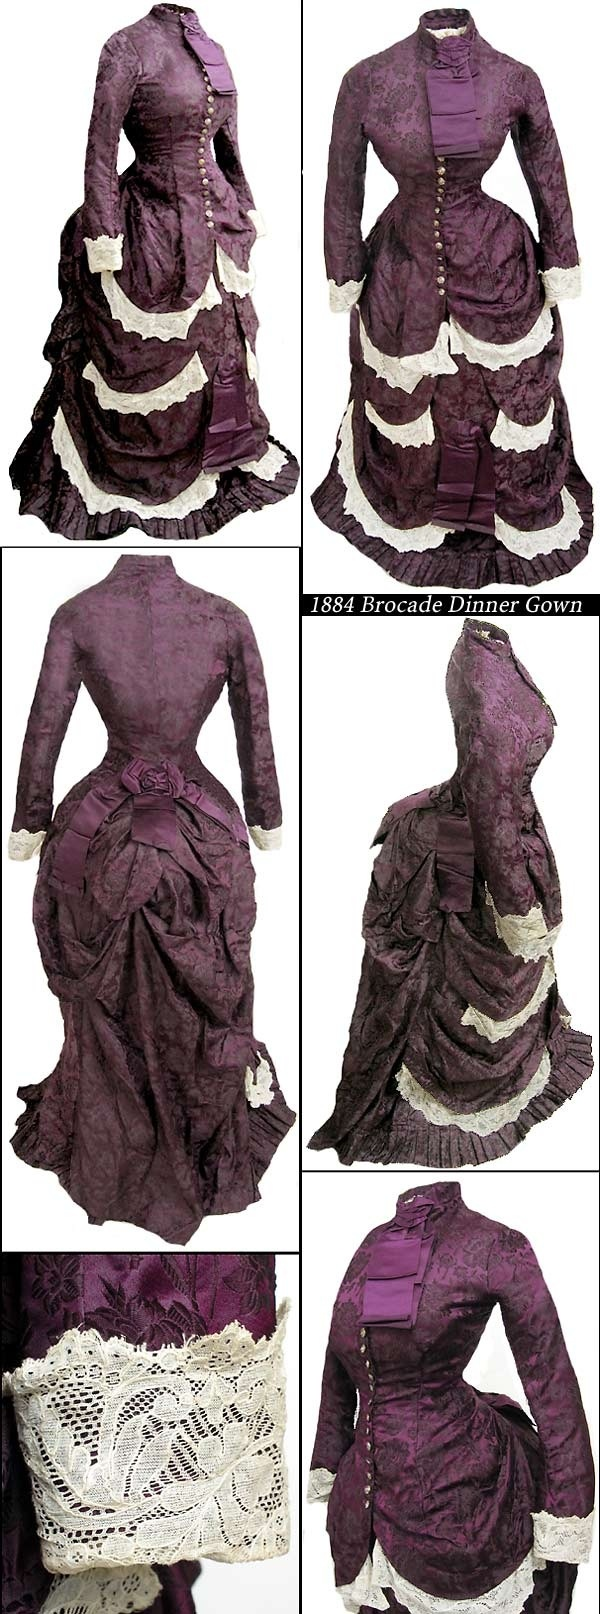 Victorian dress - Too bad there isn't anywhere to wear this now : /